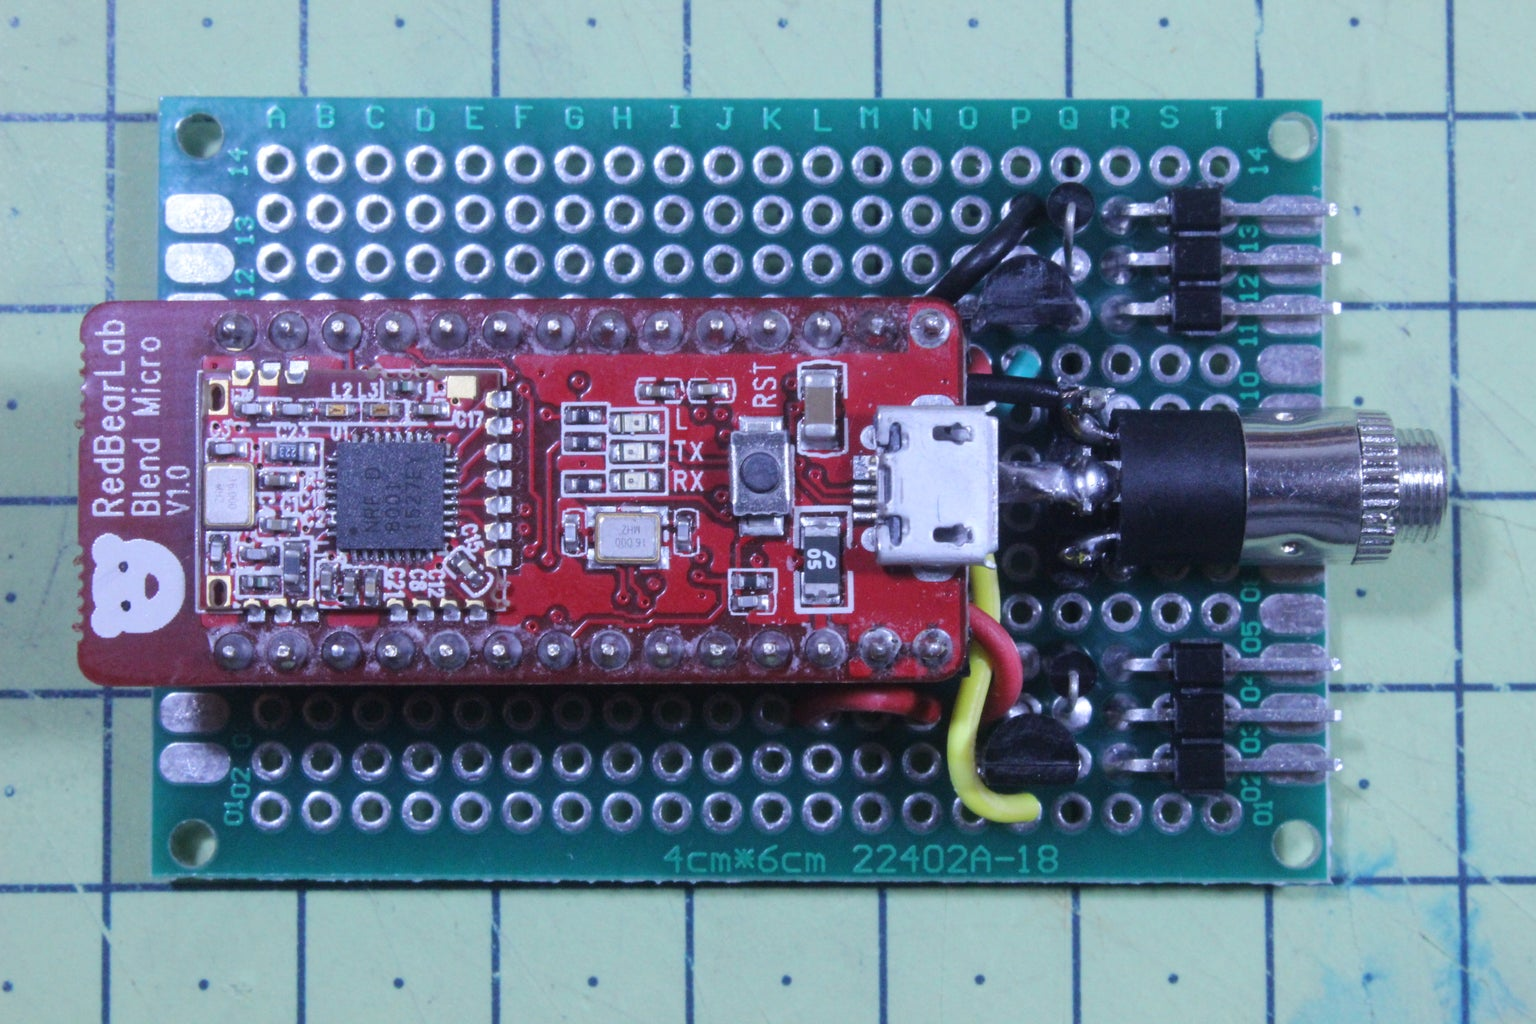 Final Checks With a Multimeter